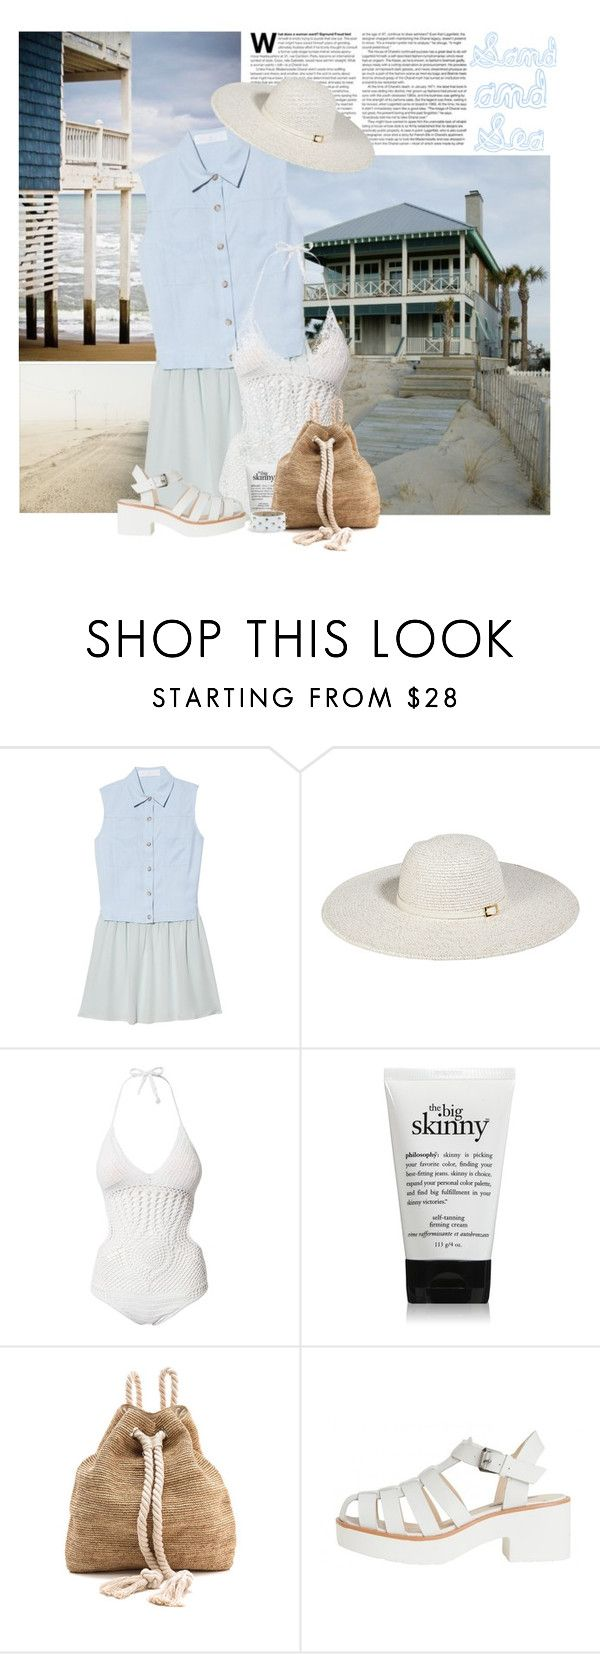 """*a day at the beach*"" by lady-ju ❤ liked on Polyvore featuring Thakoon Addition, Melissa Odabash, Hot Anatomy, philosophy, Bop Basics and Cara"